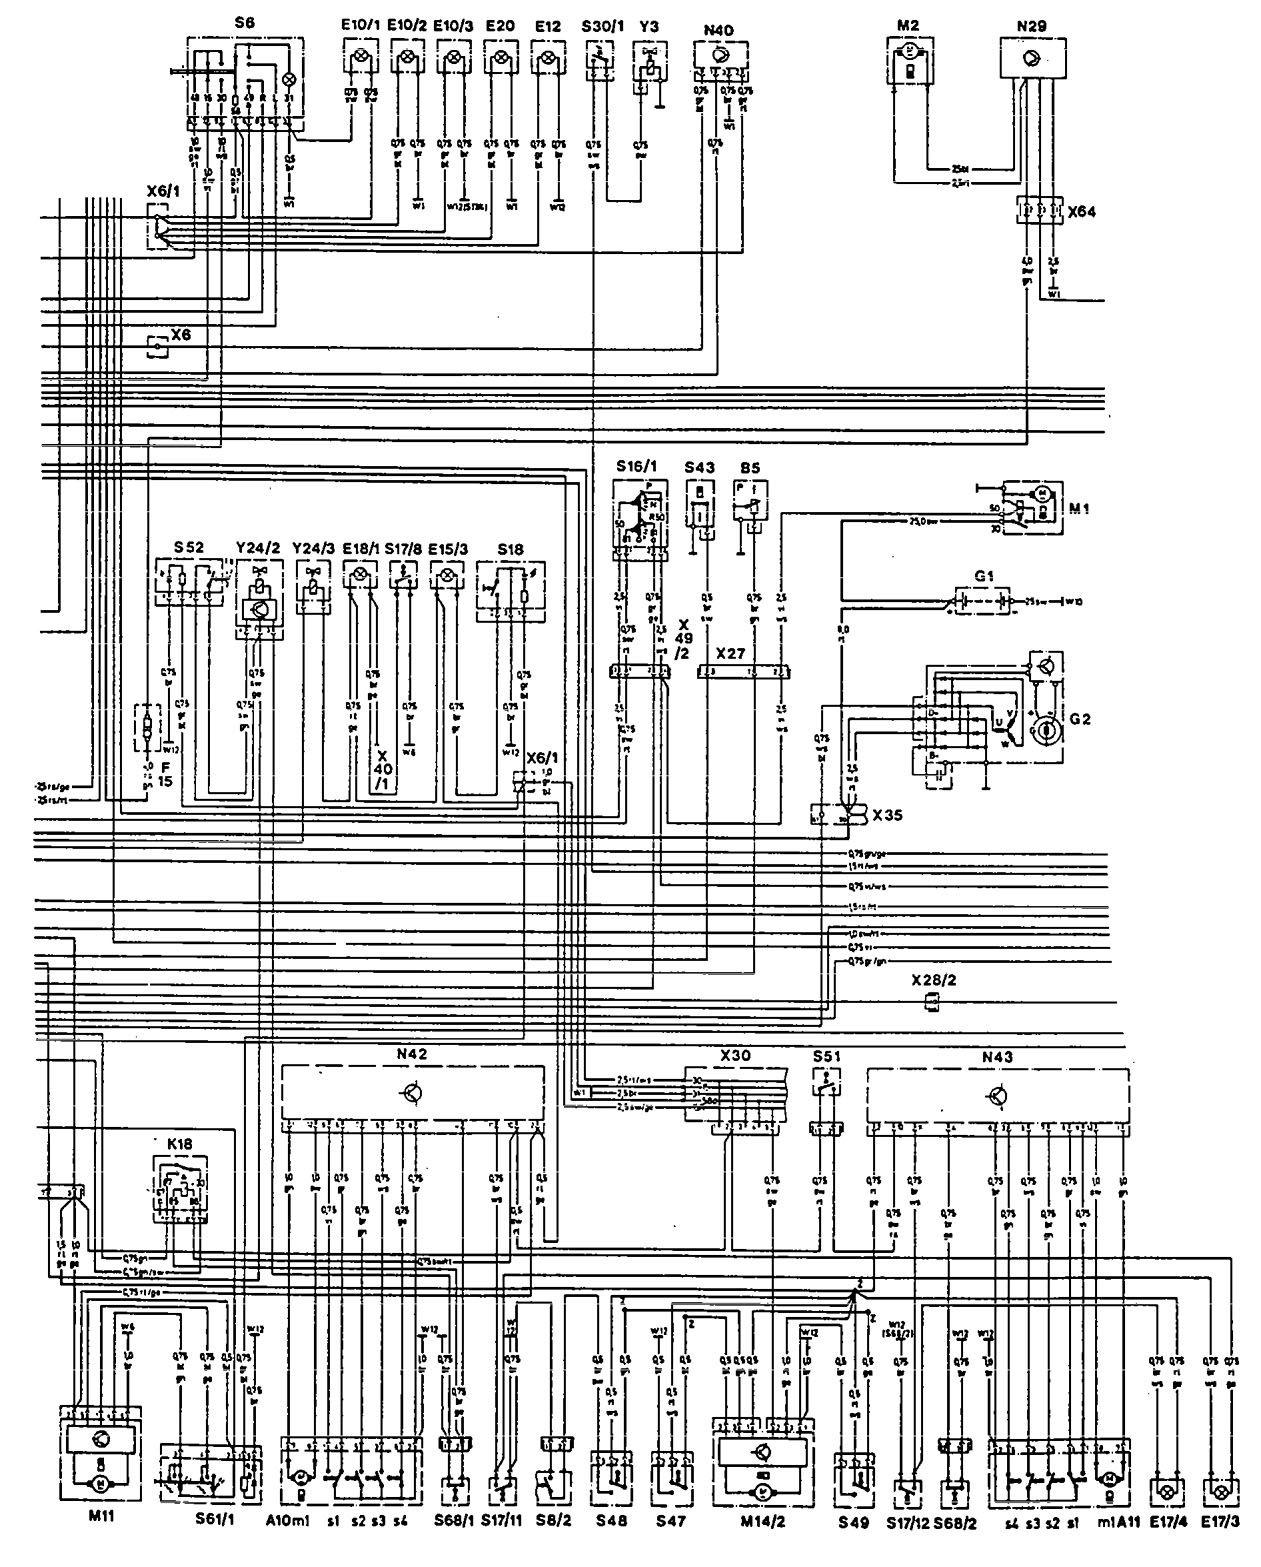 Fine Mercedes Benz Wiring Diagram Image Collection - Best Images for ...